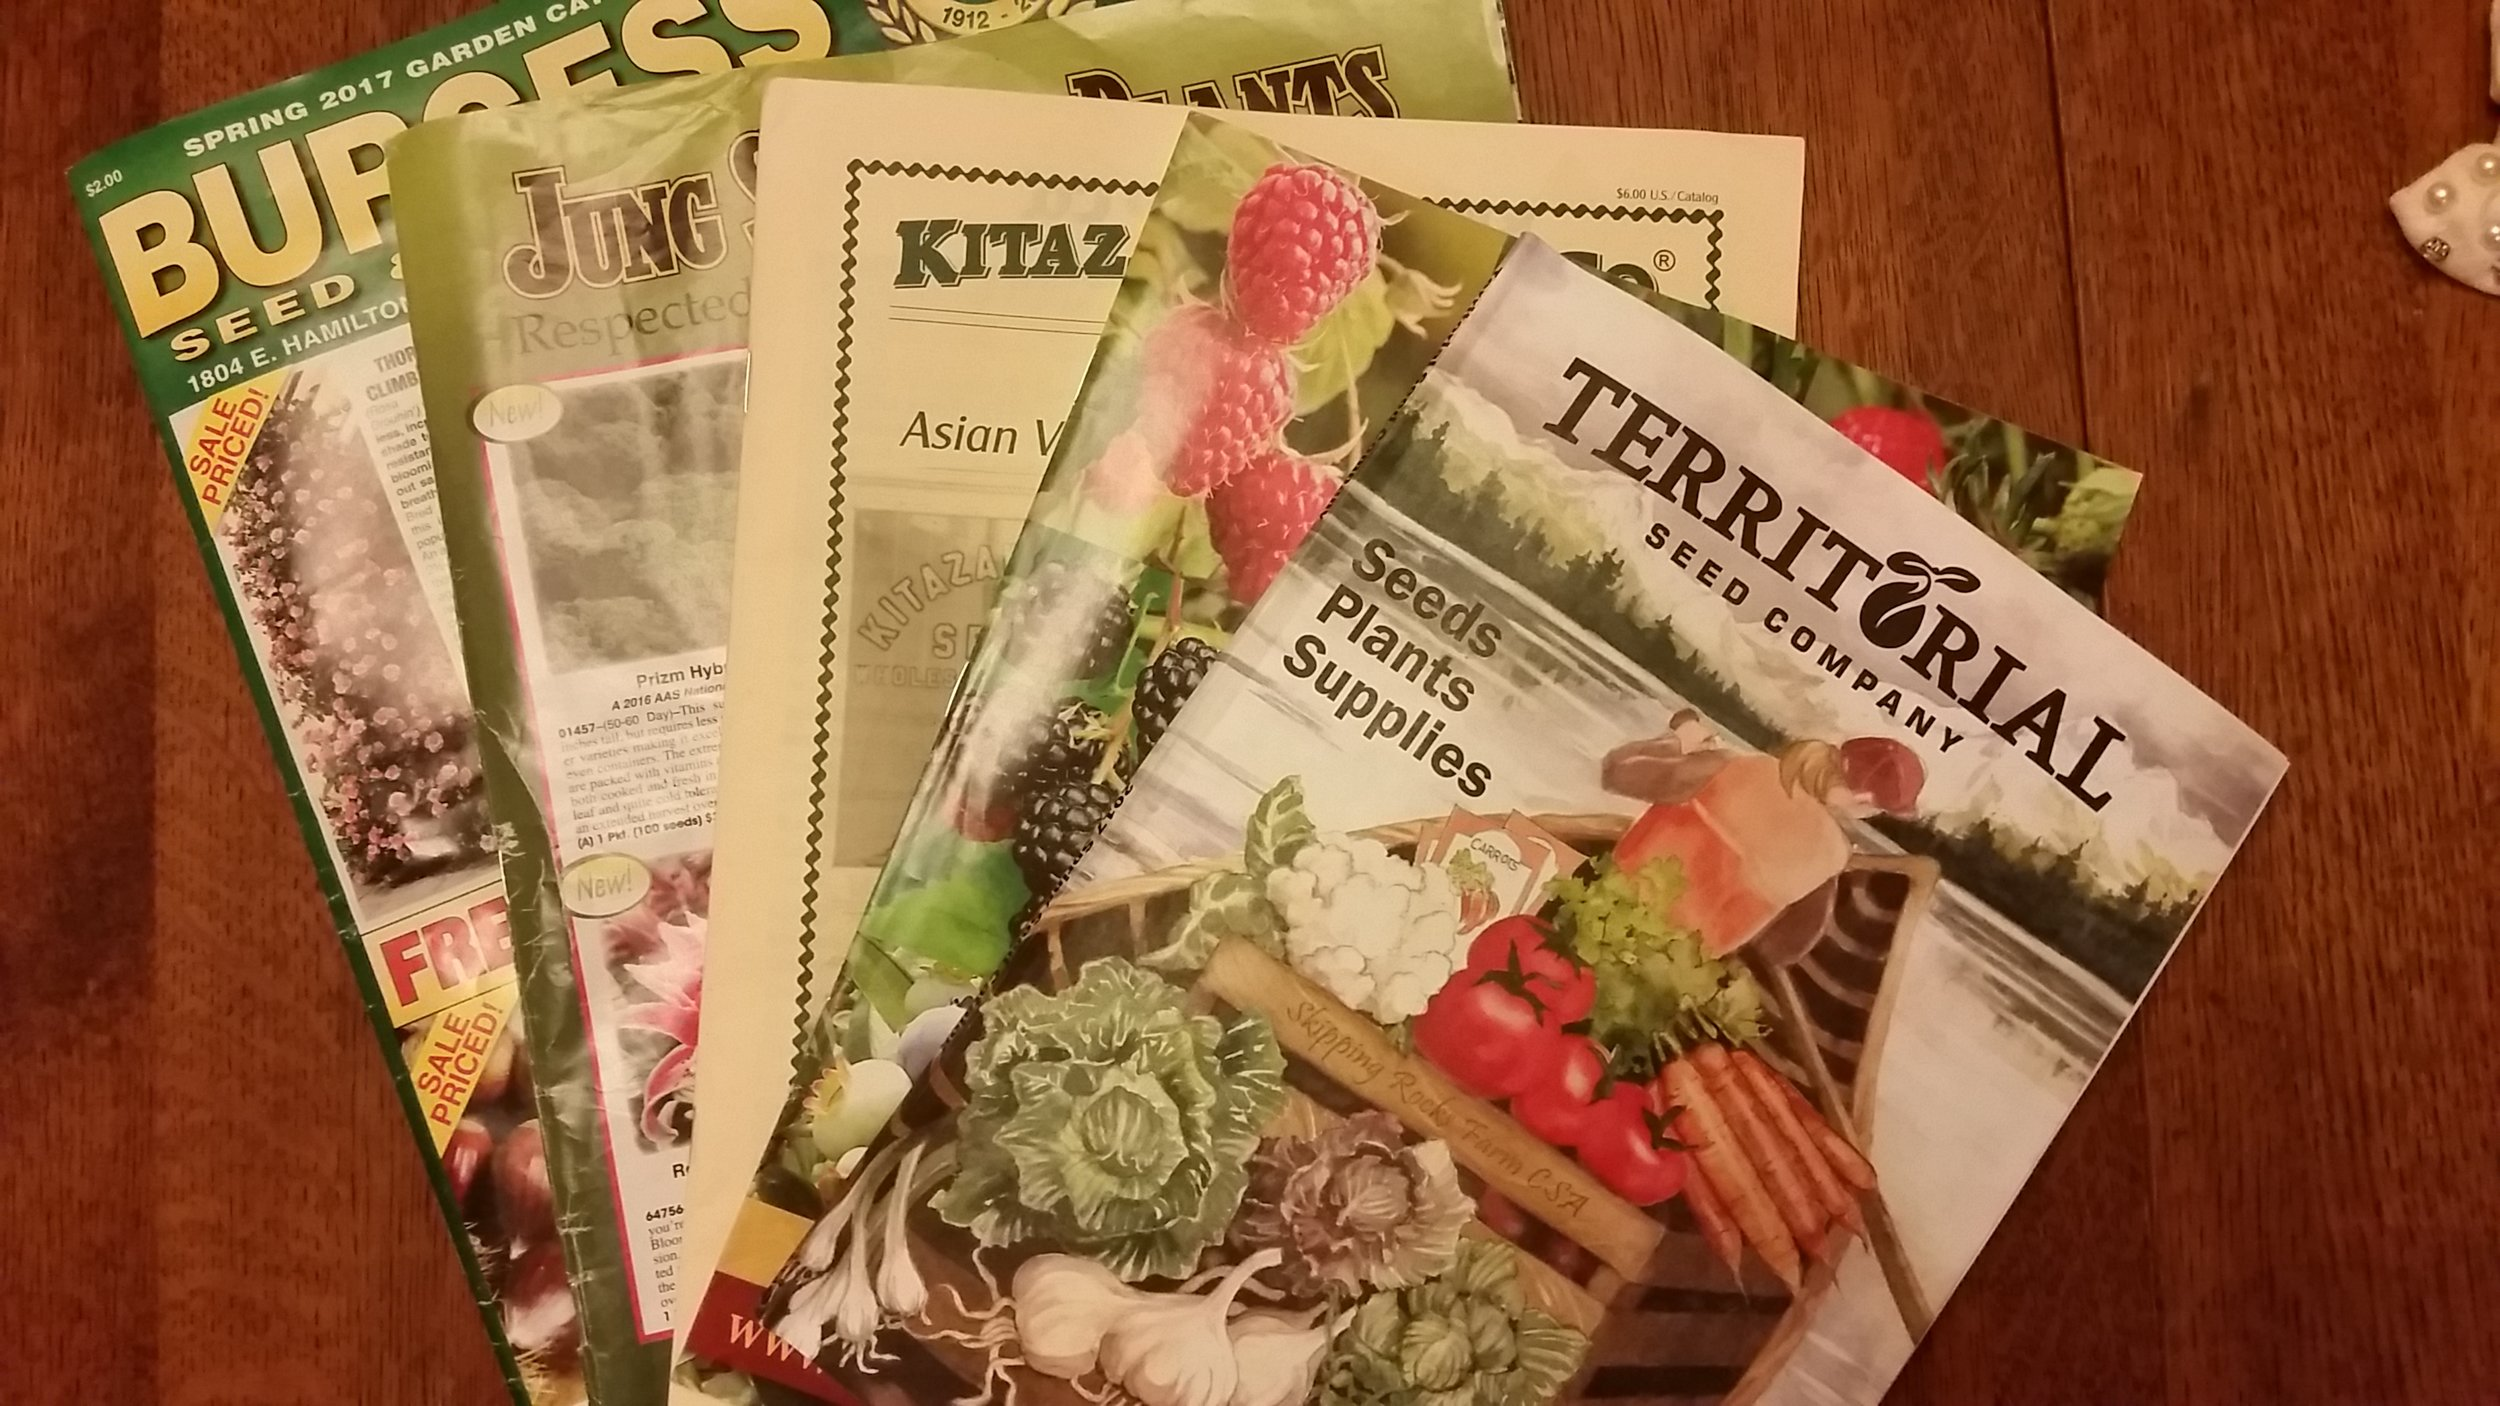 2017 Seed Catalogs Are Arriving!